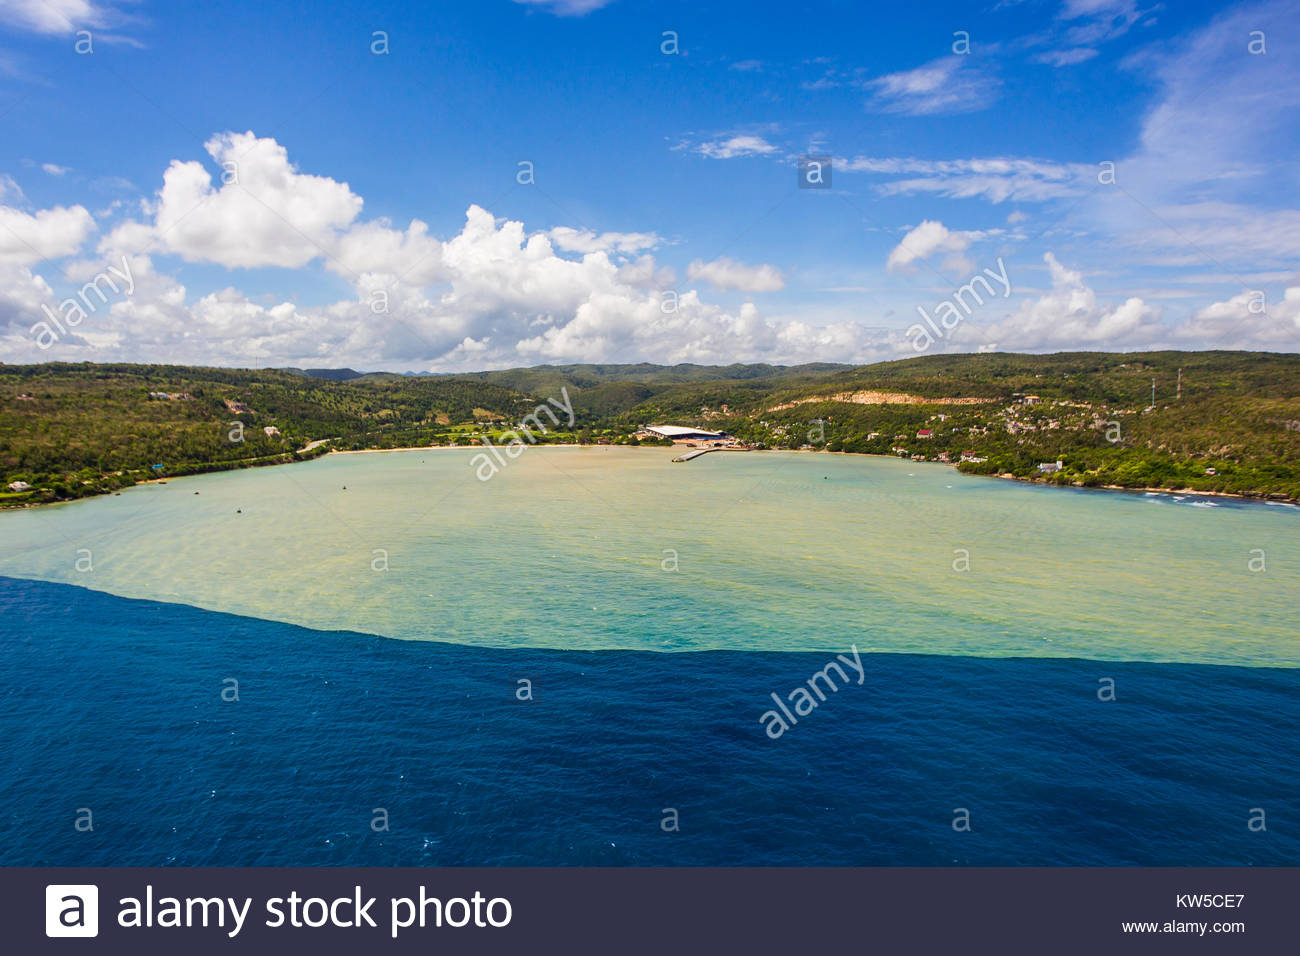 An aerial view of heavy rain runoff carrying soil, flowing into the Caribbean Sea on north coast of Jamaica. Stock Photo